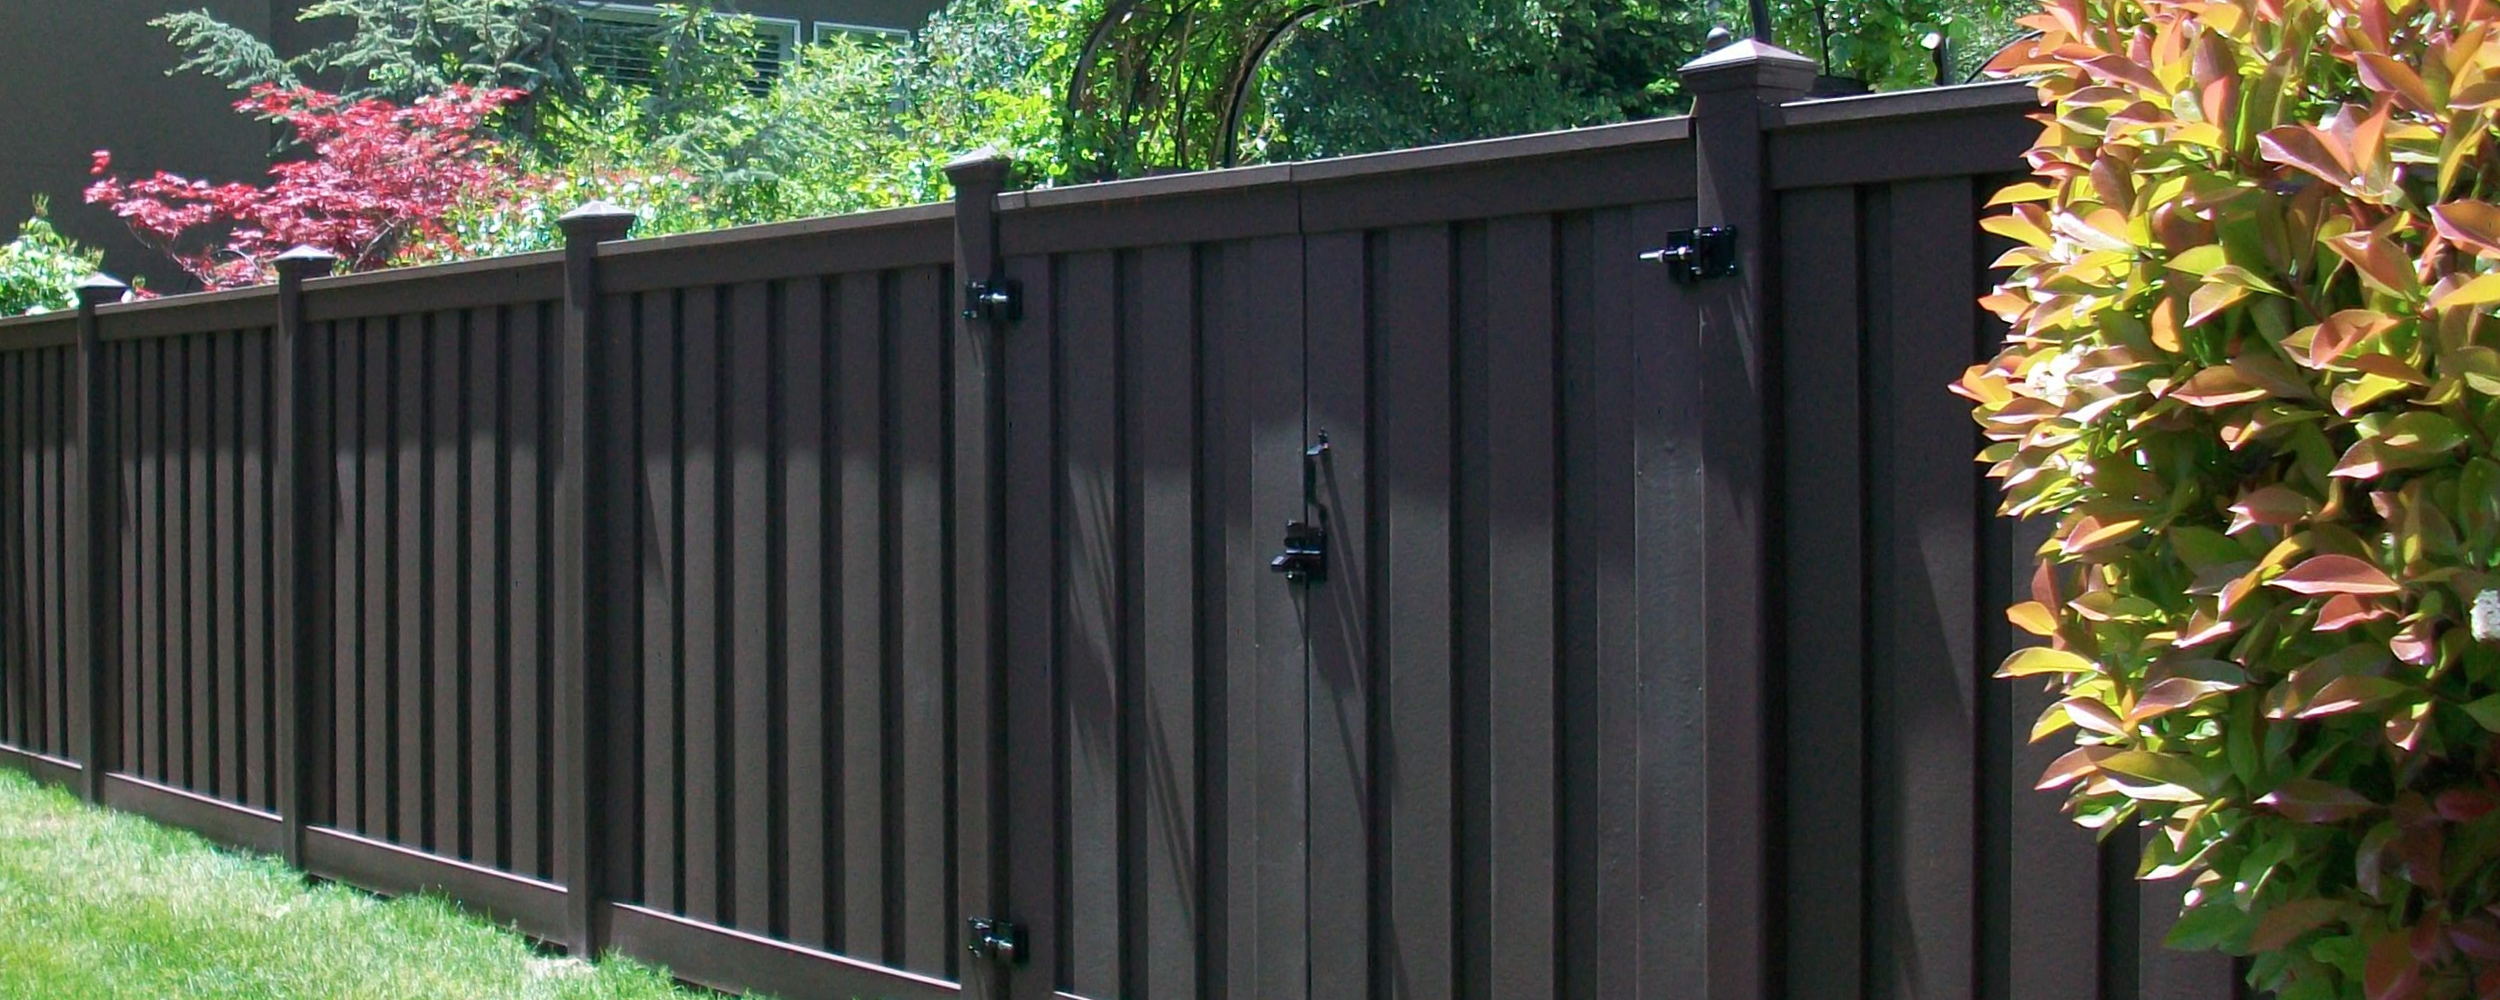 Home Repair Companies Dallas Fence Repair Fencing Construction Company Zip Roofing